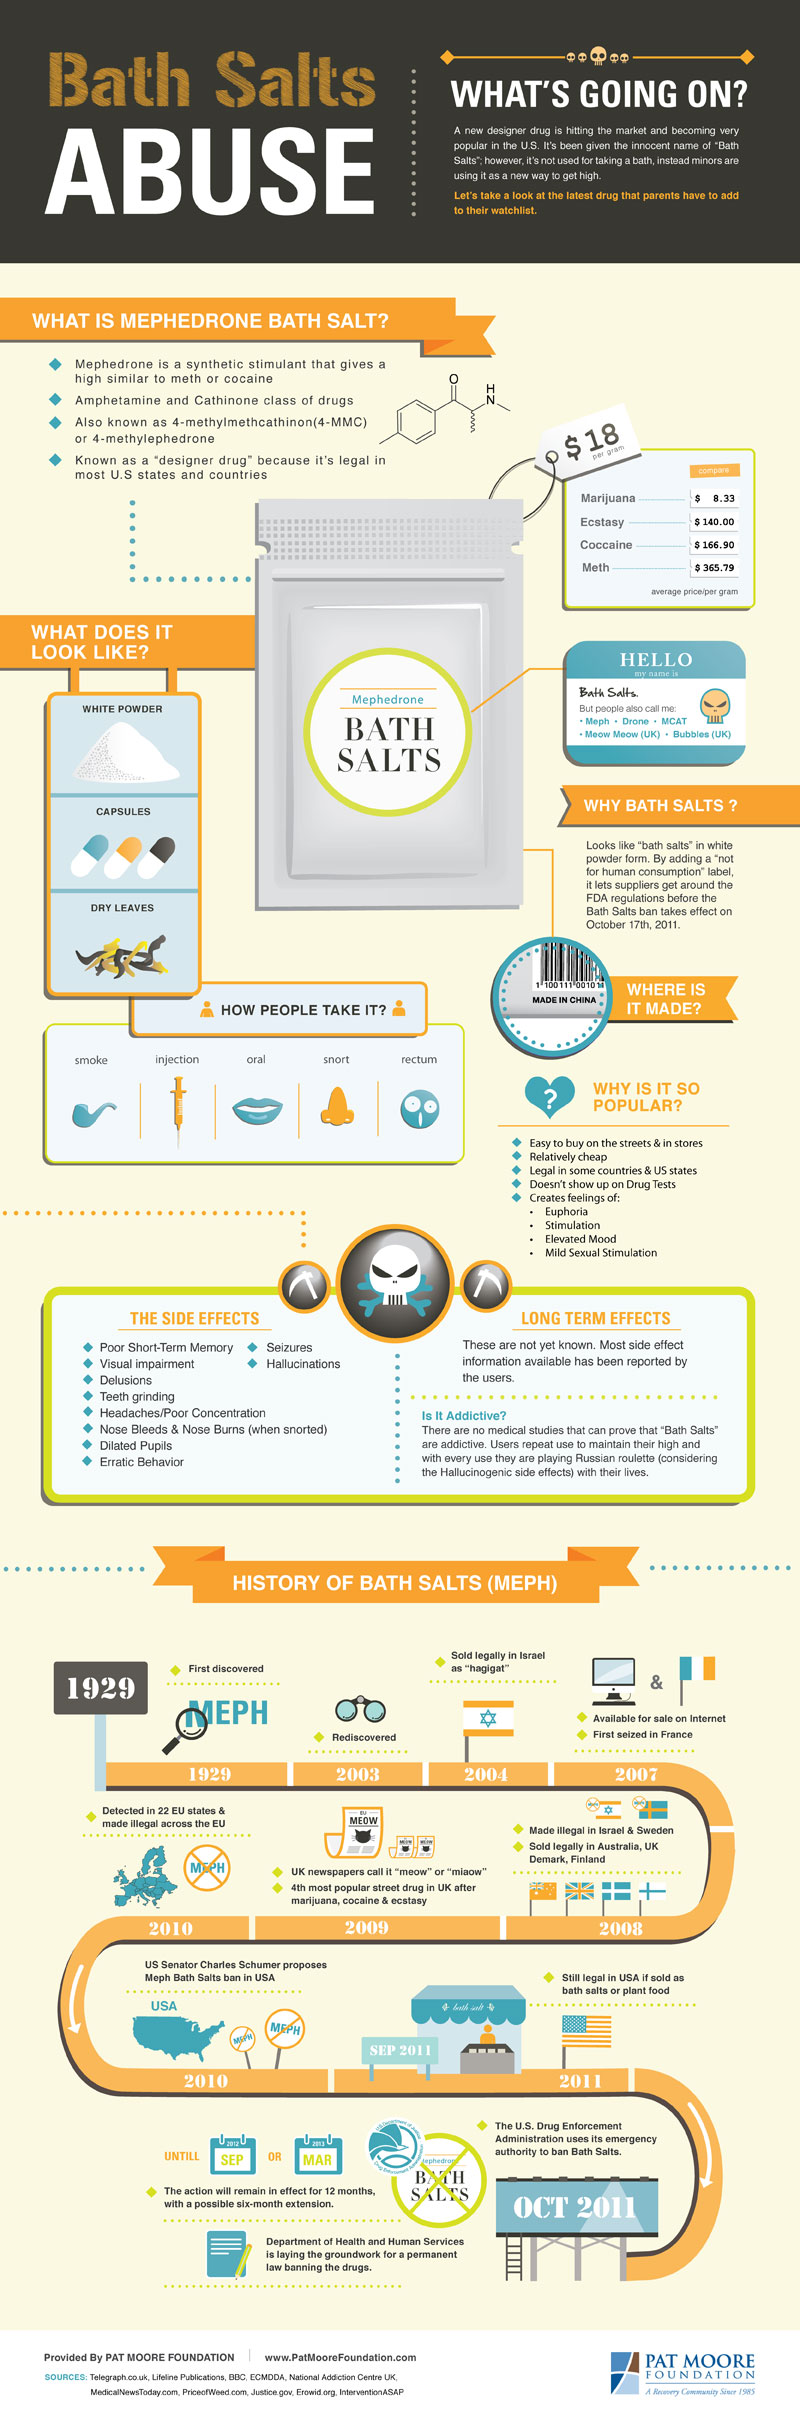 Bath Salts Substance Abuse & Addiction Infographic